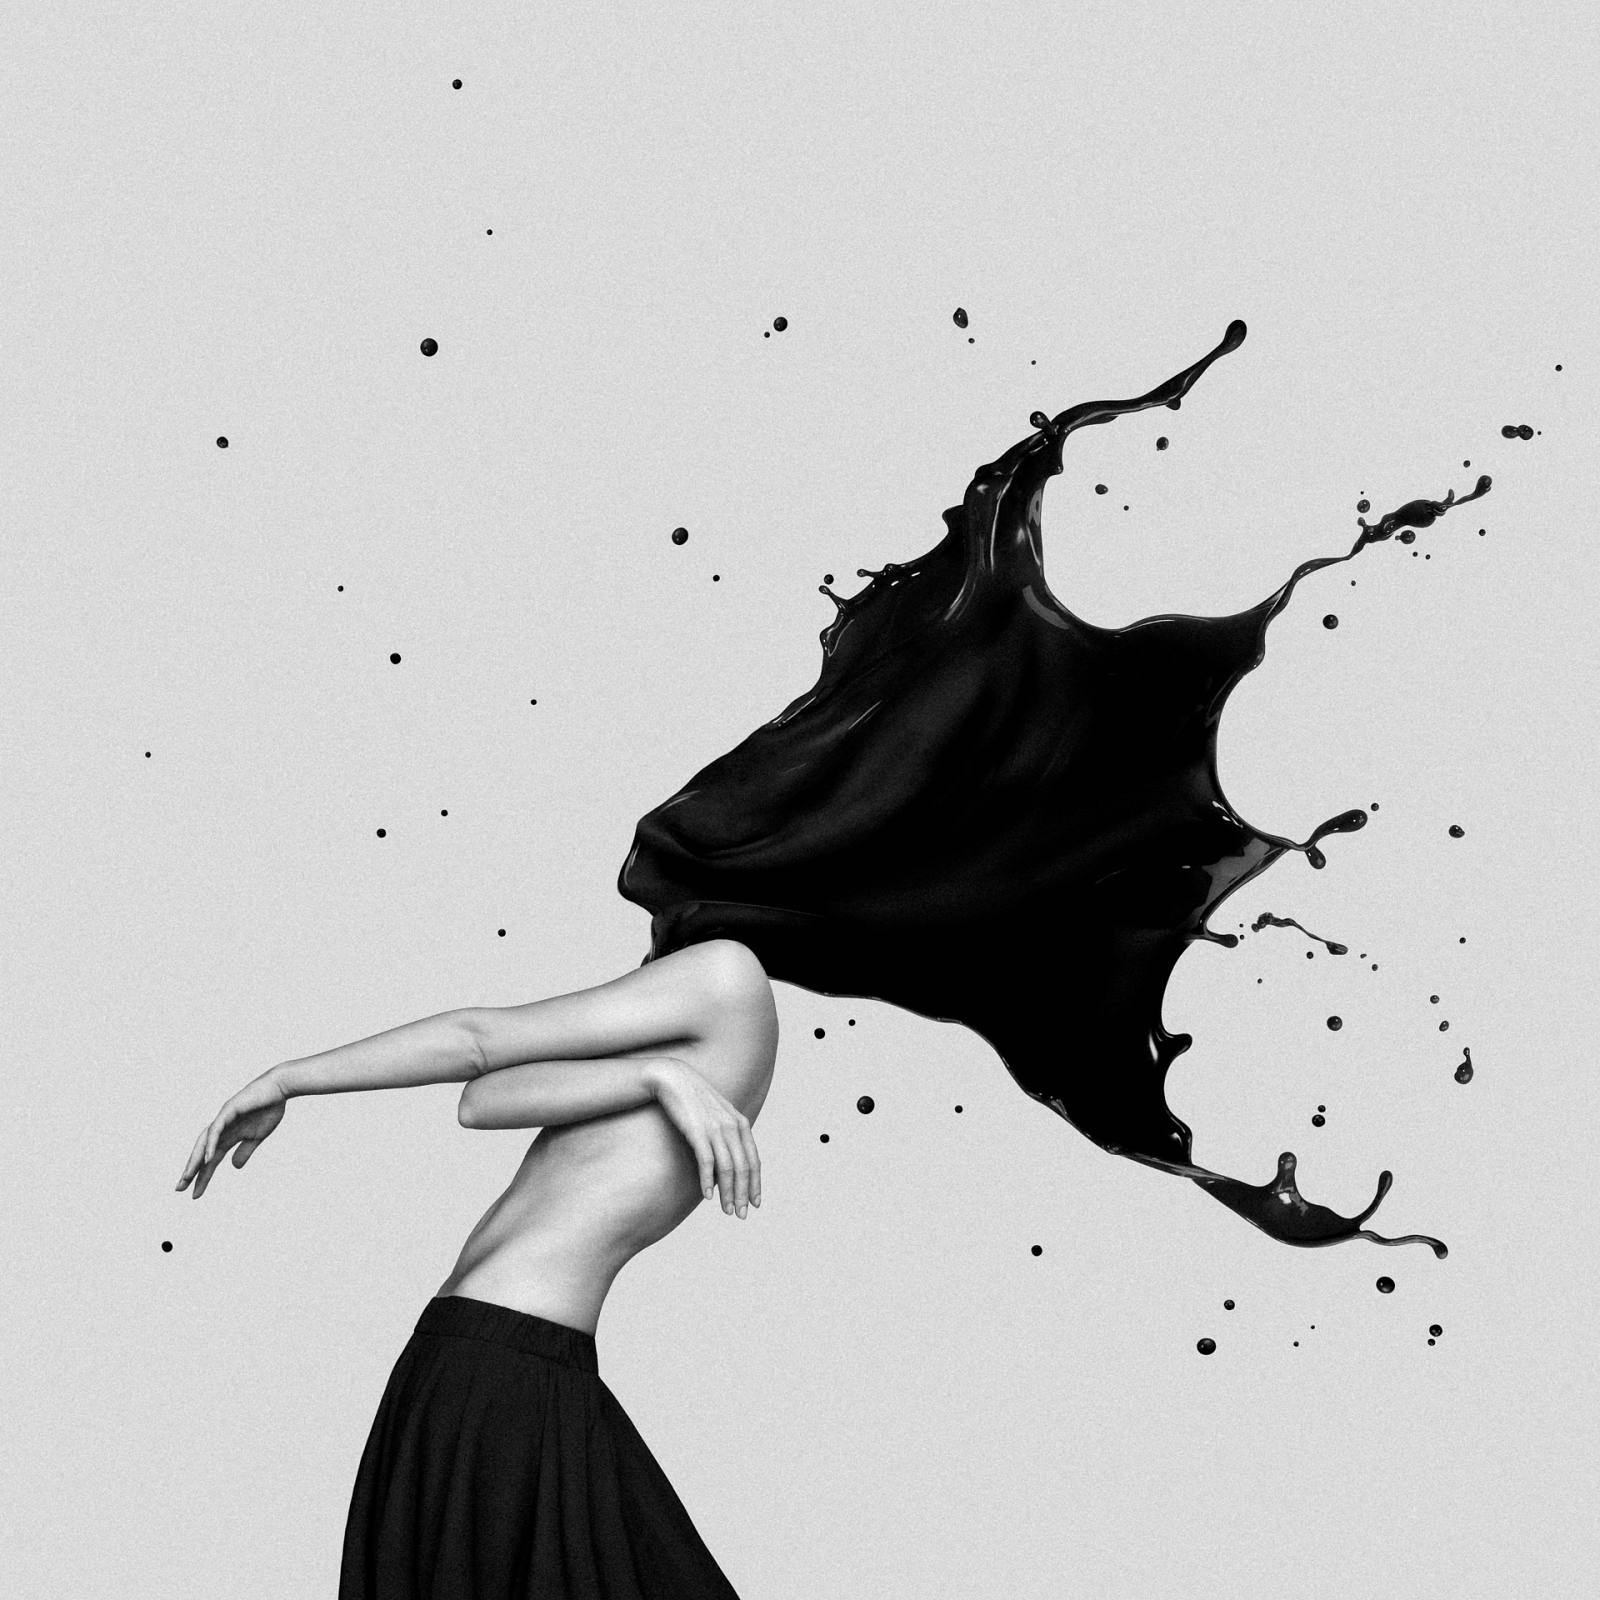 Metamorphosis. Black [Maria - photography - kapka | ello